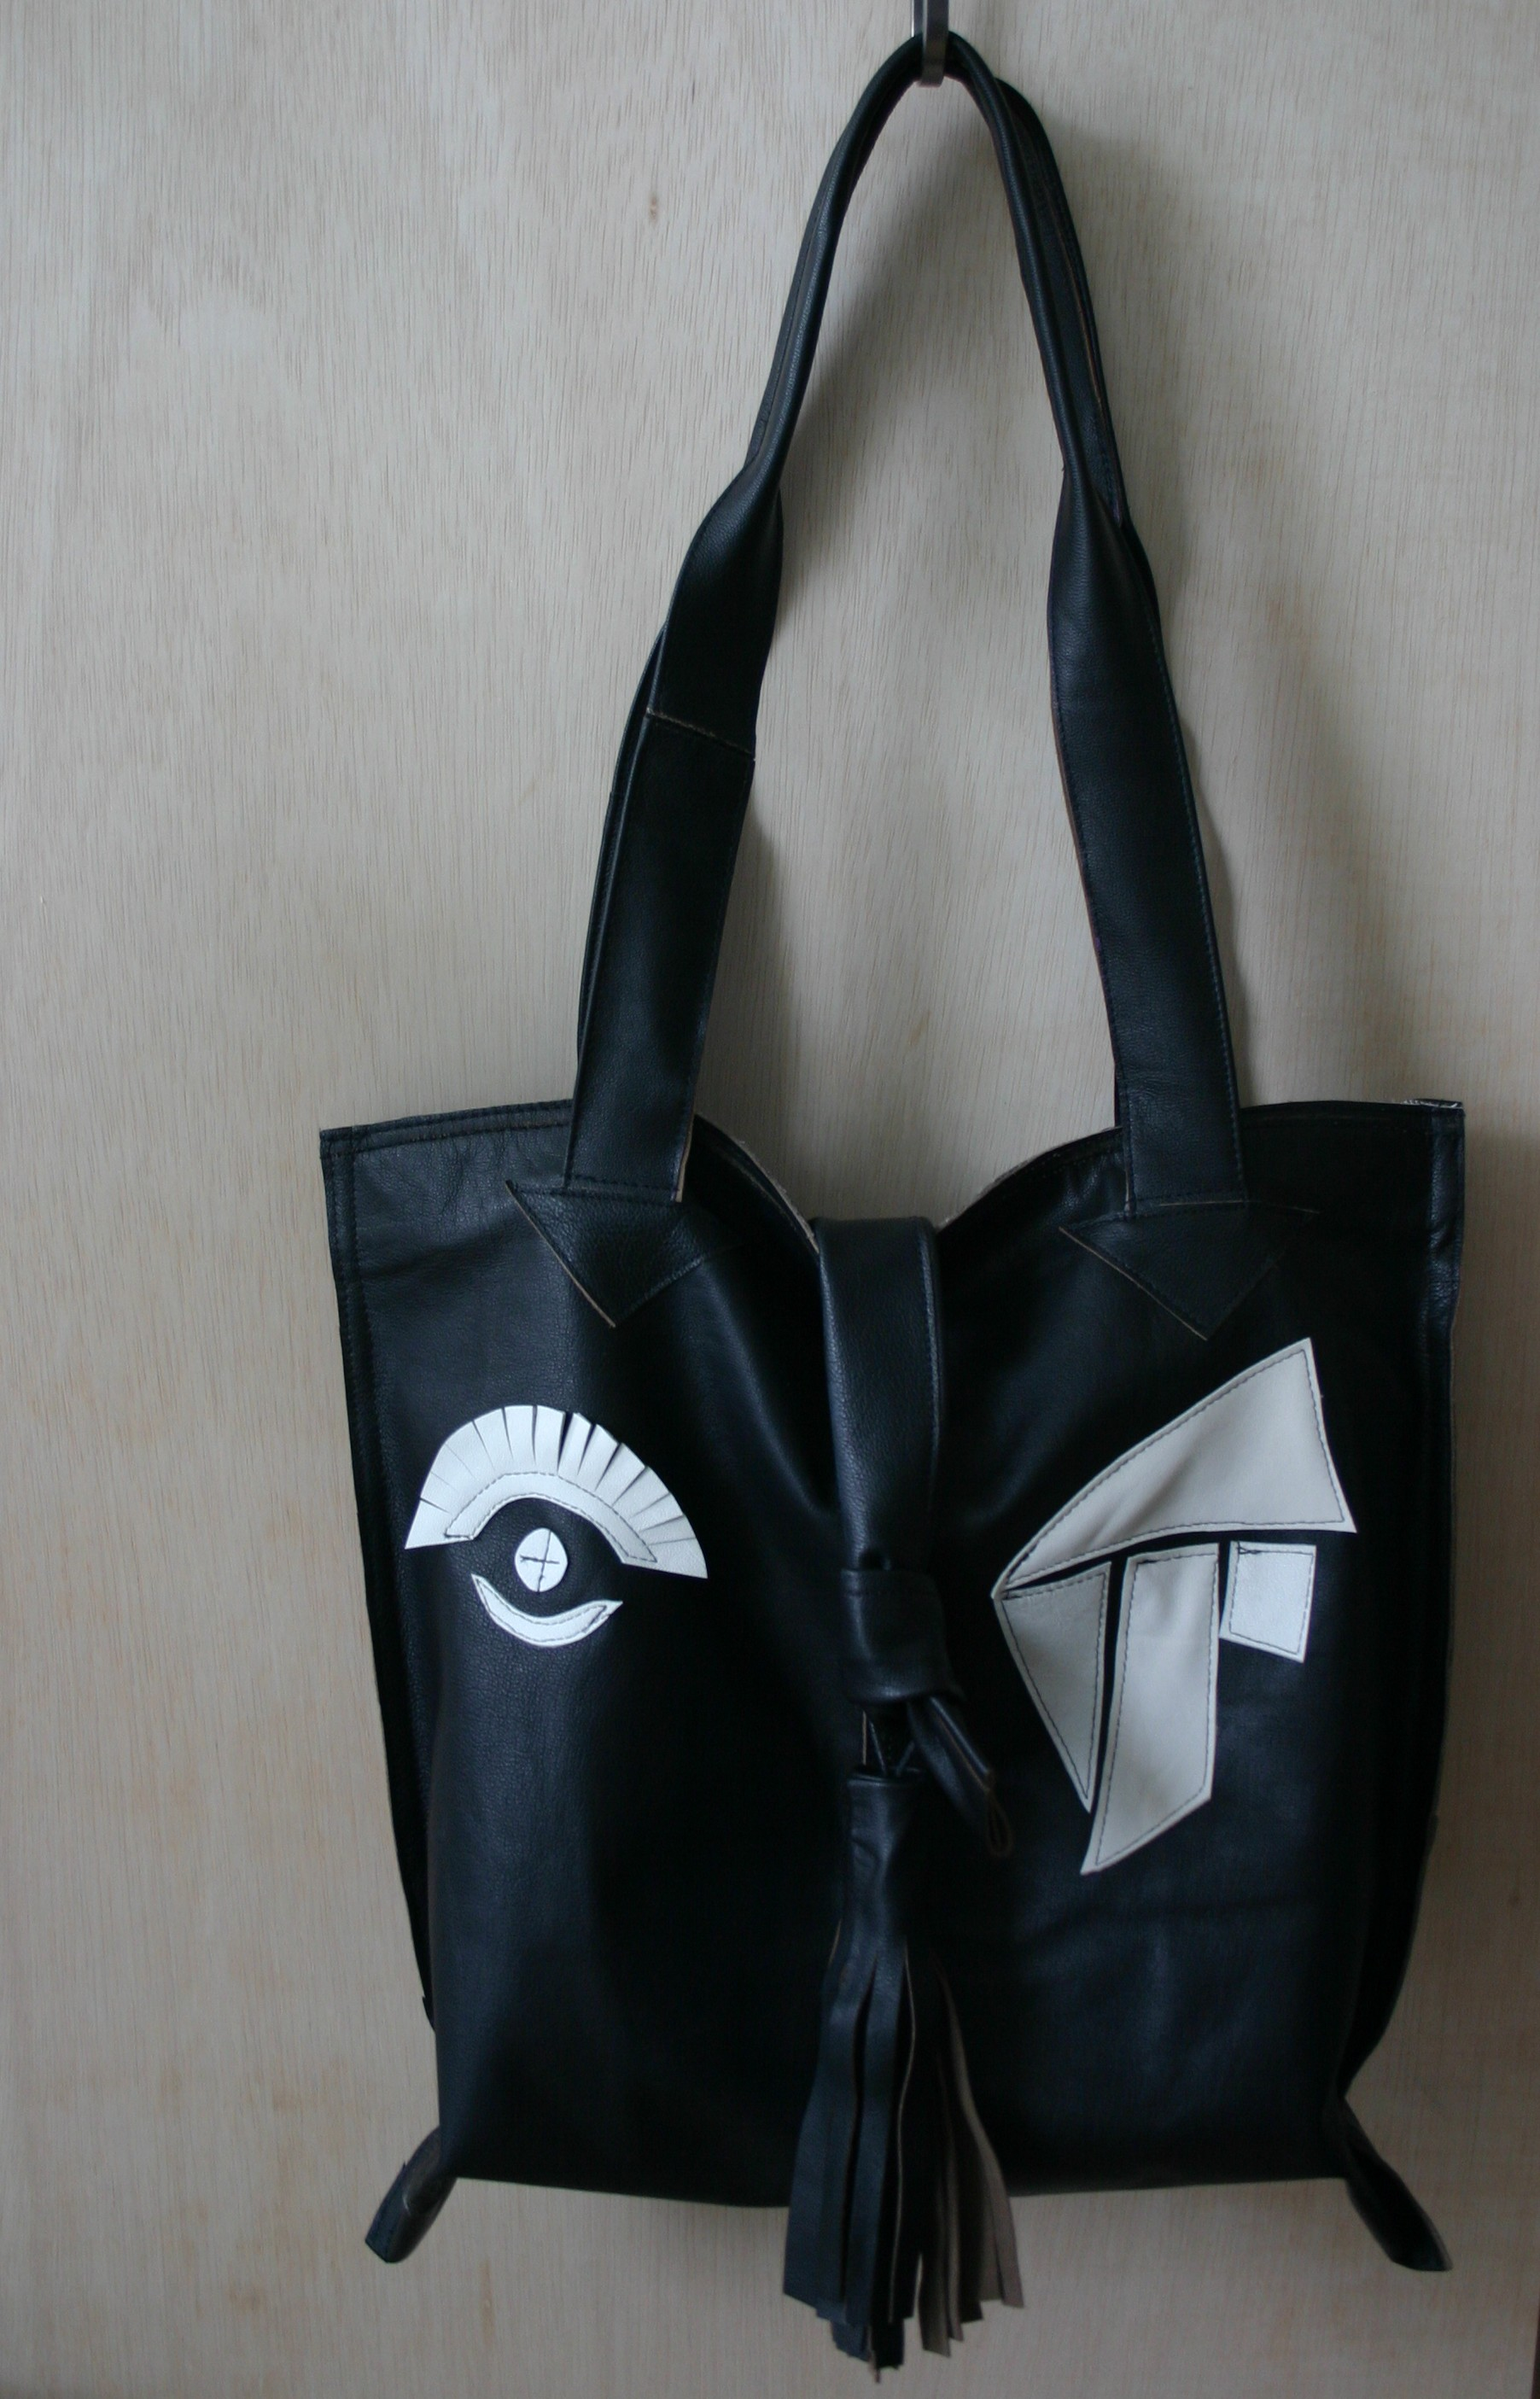 diy leather bag made out of old leather jacket, decorations white leather inspired by abstract art.